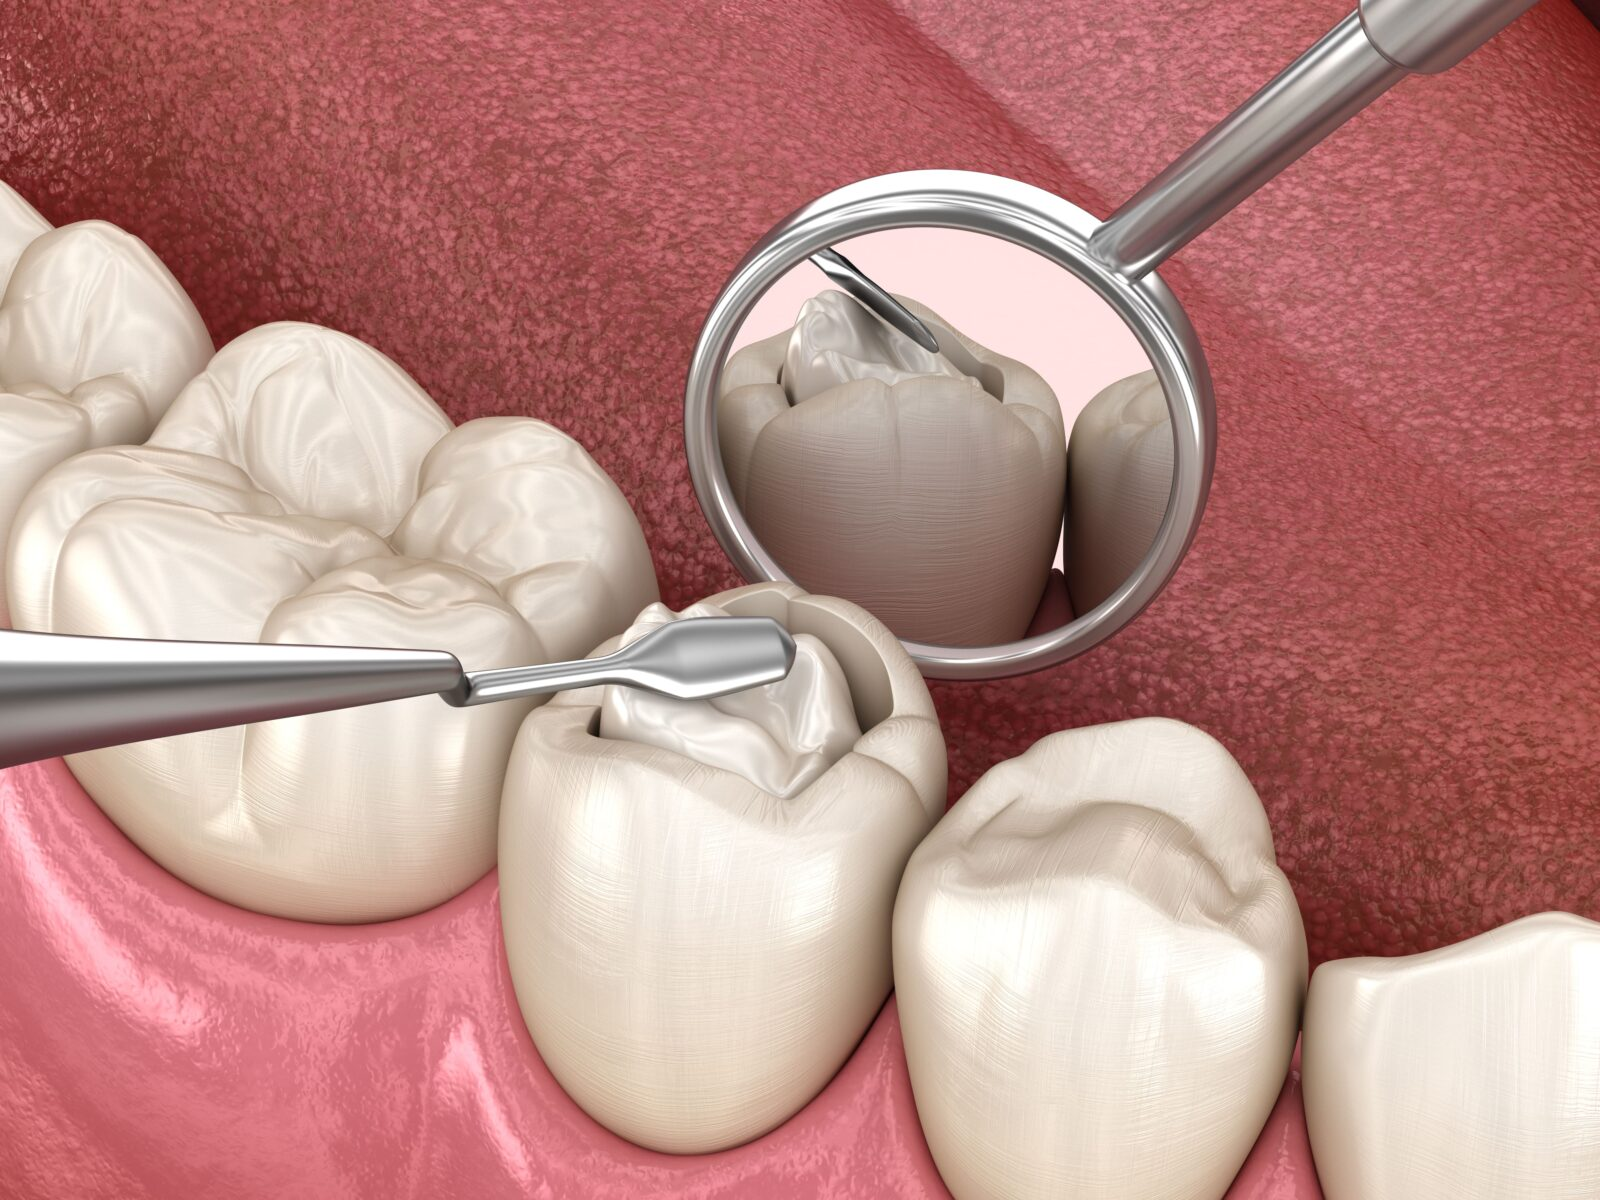 composite being placed in a dental cavity